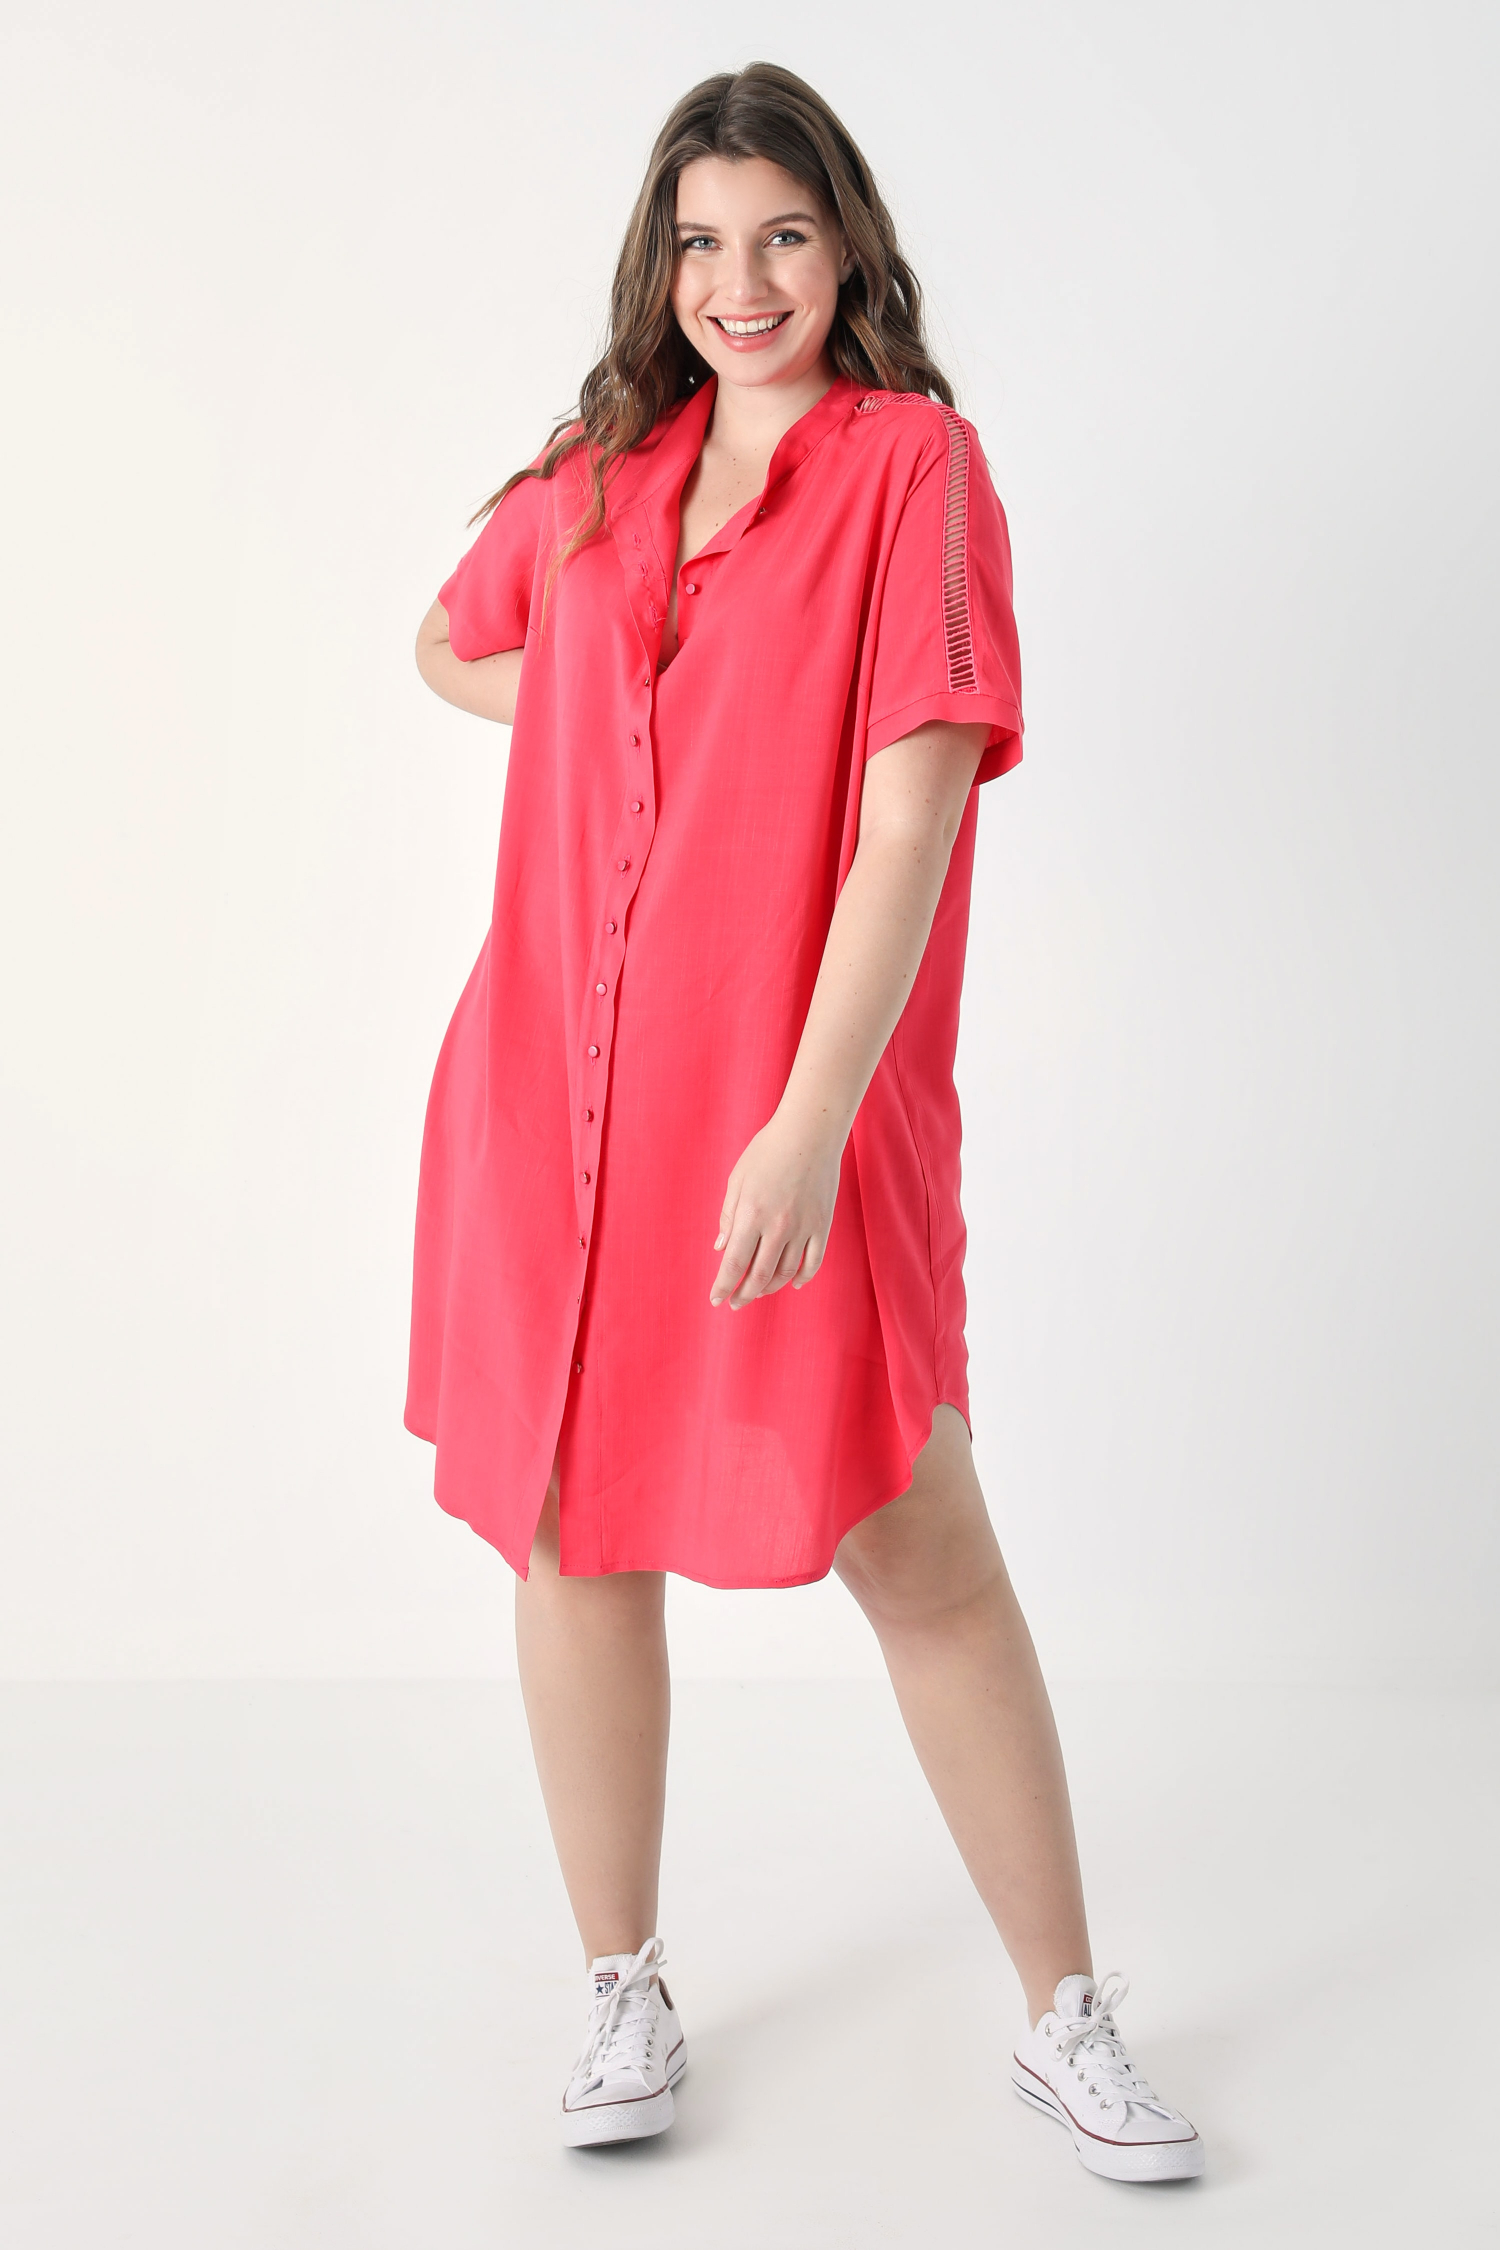 Long shirt with braid (shipping 25/31 March).